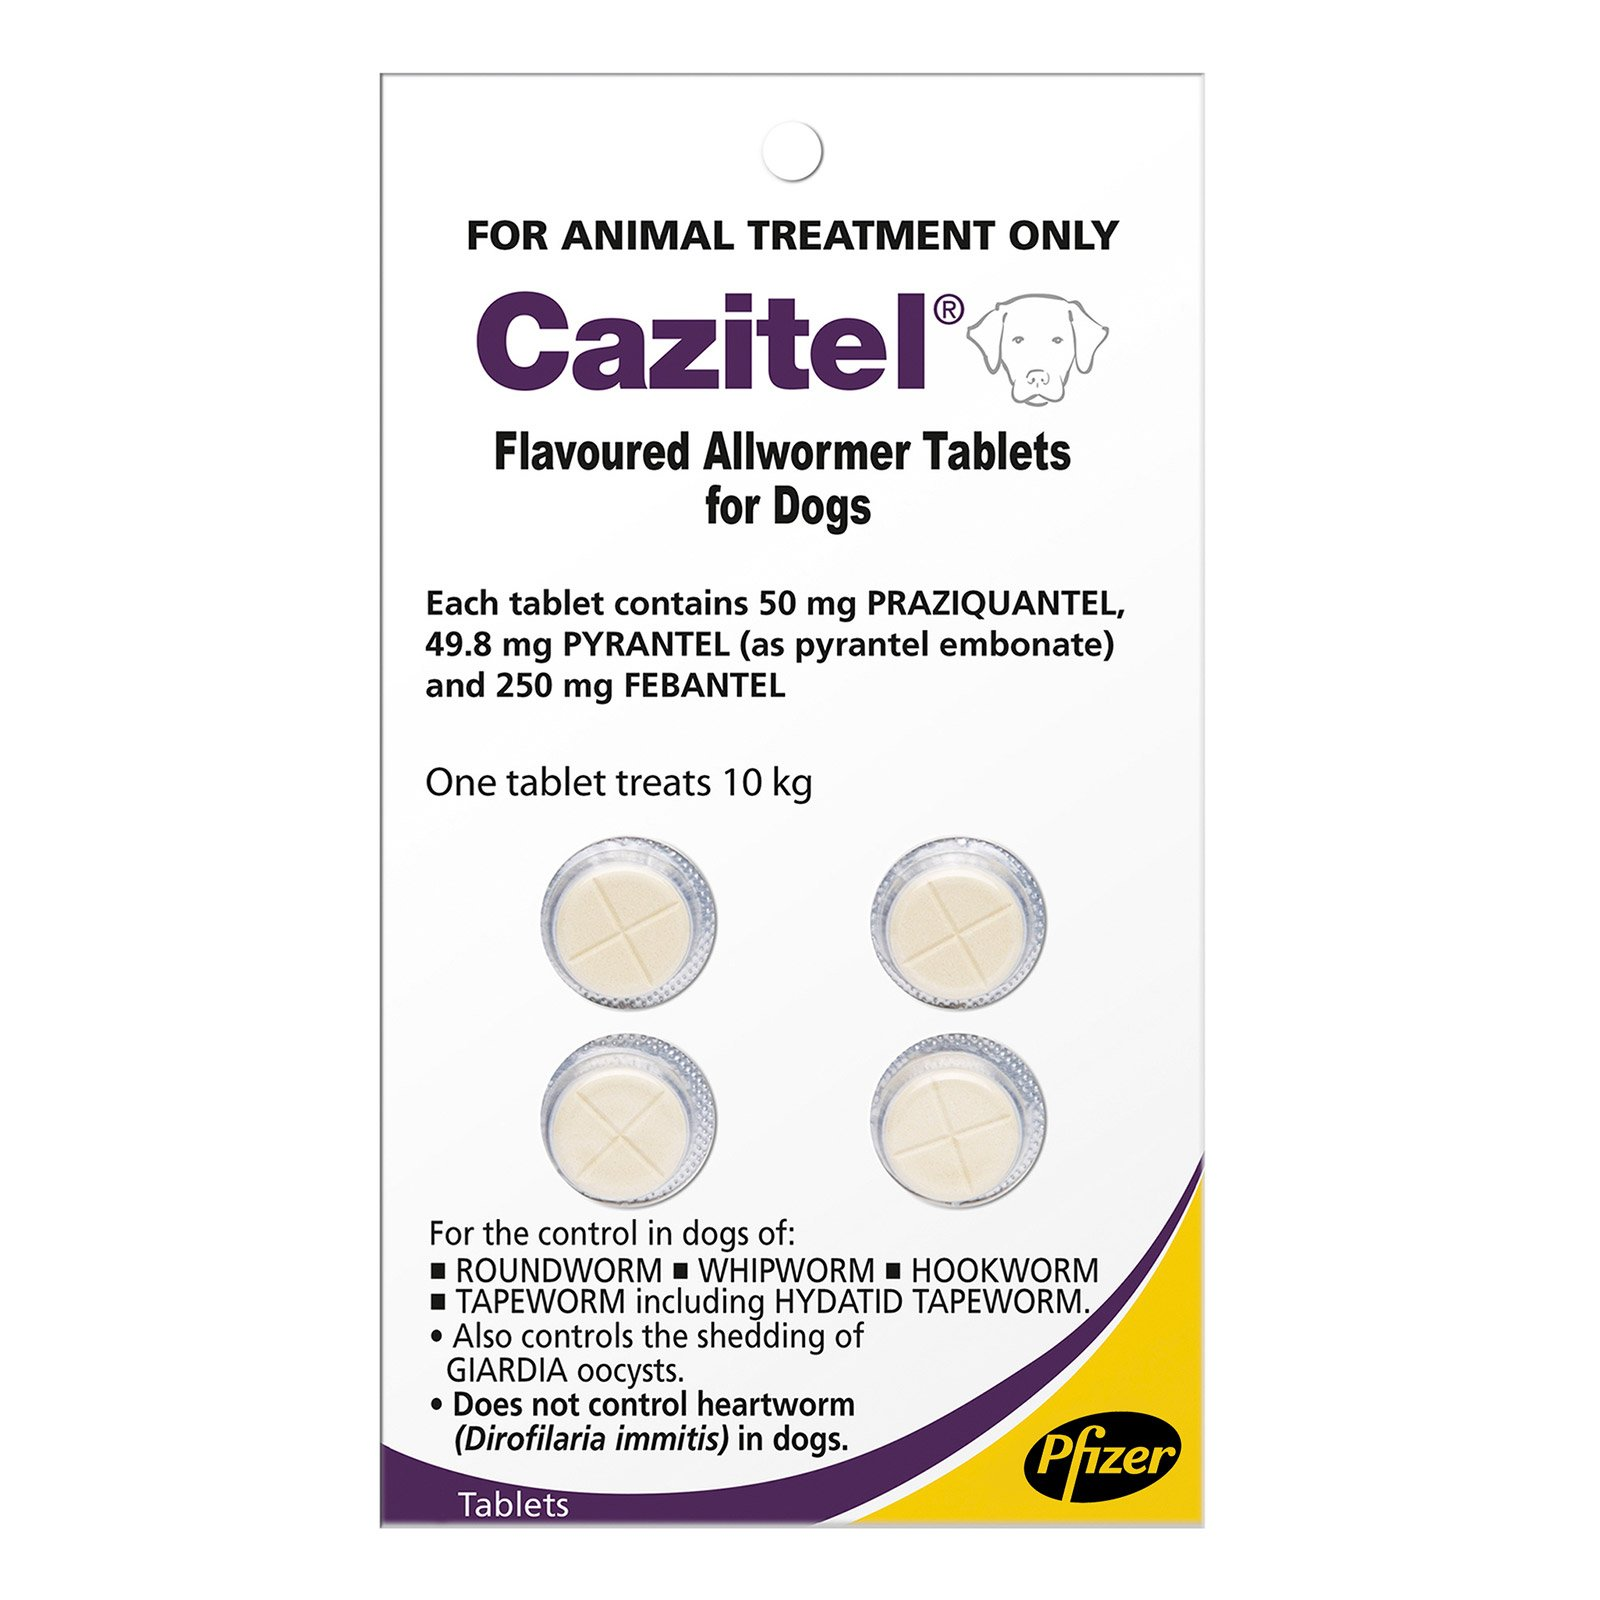 636908853631113964-cazitel-for-dogs-10kg-4-tab-pack-purple